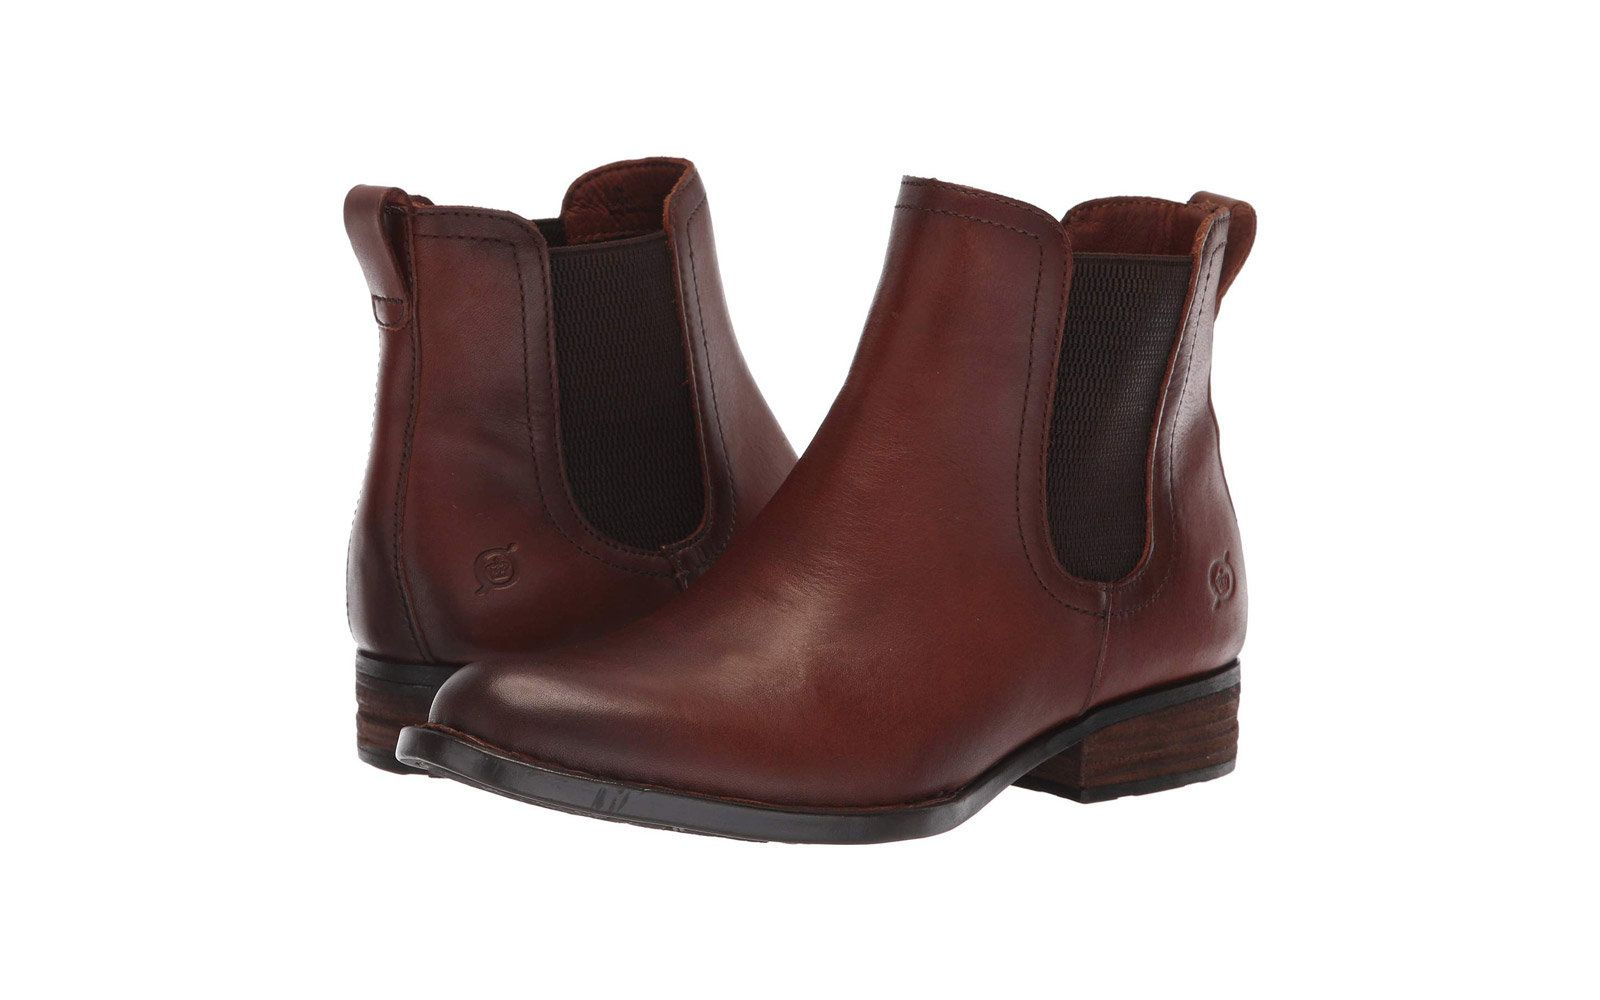 Boots, Comfortable boots, Chelsea boots